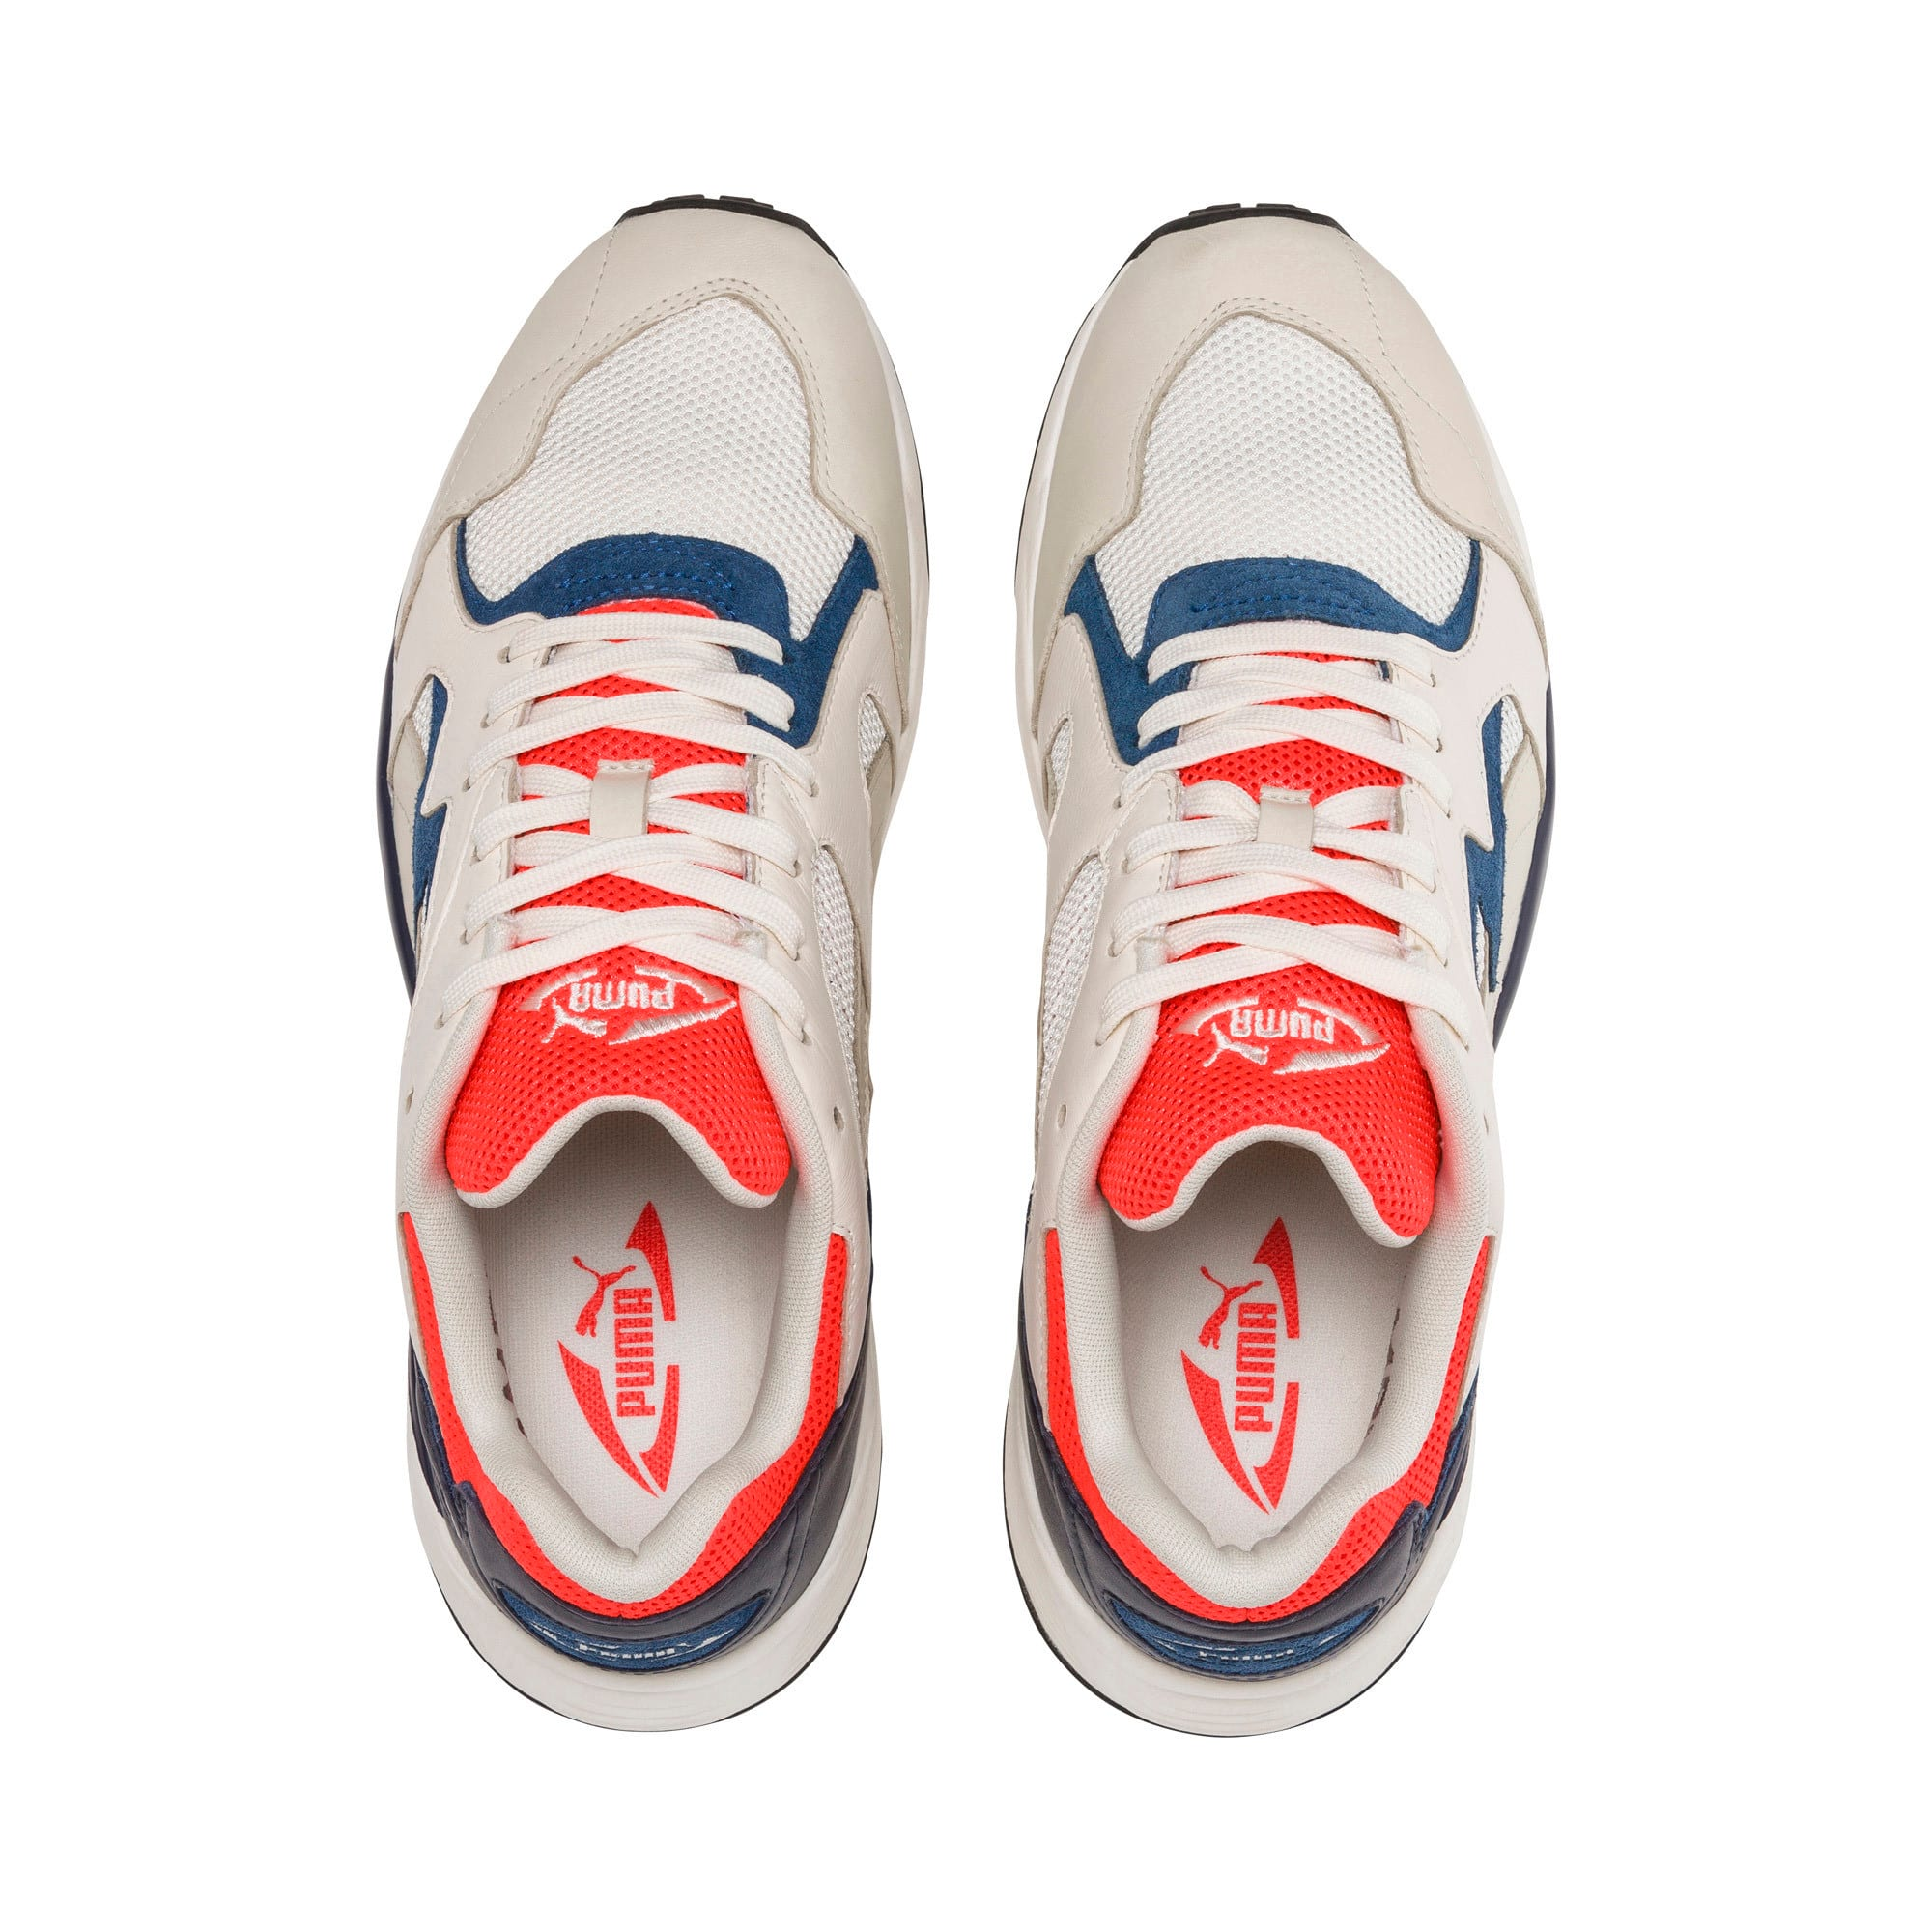 Thumbnail 6 of Prevail Classic Trainers, Whisper White-Nrgy Red, medium-IND